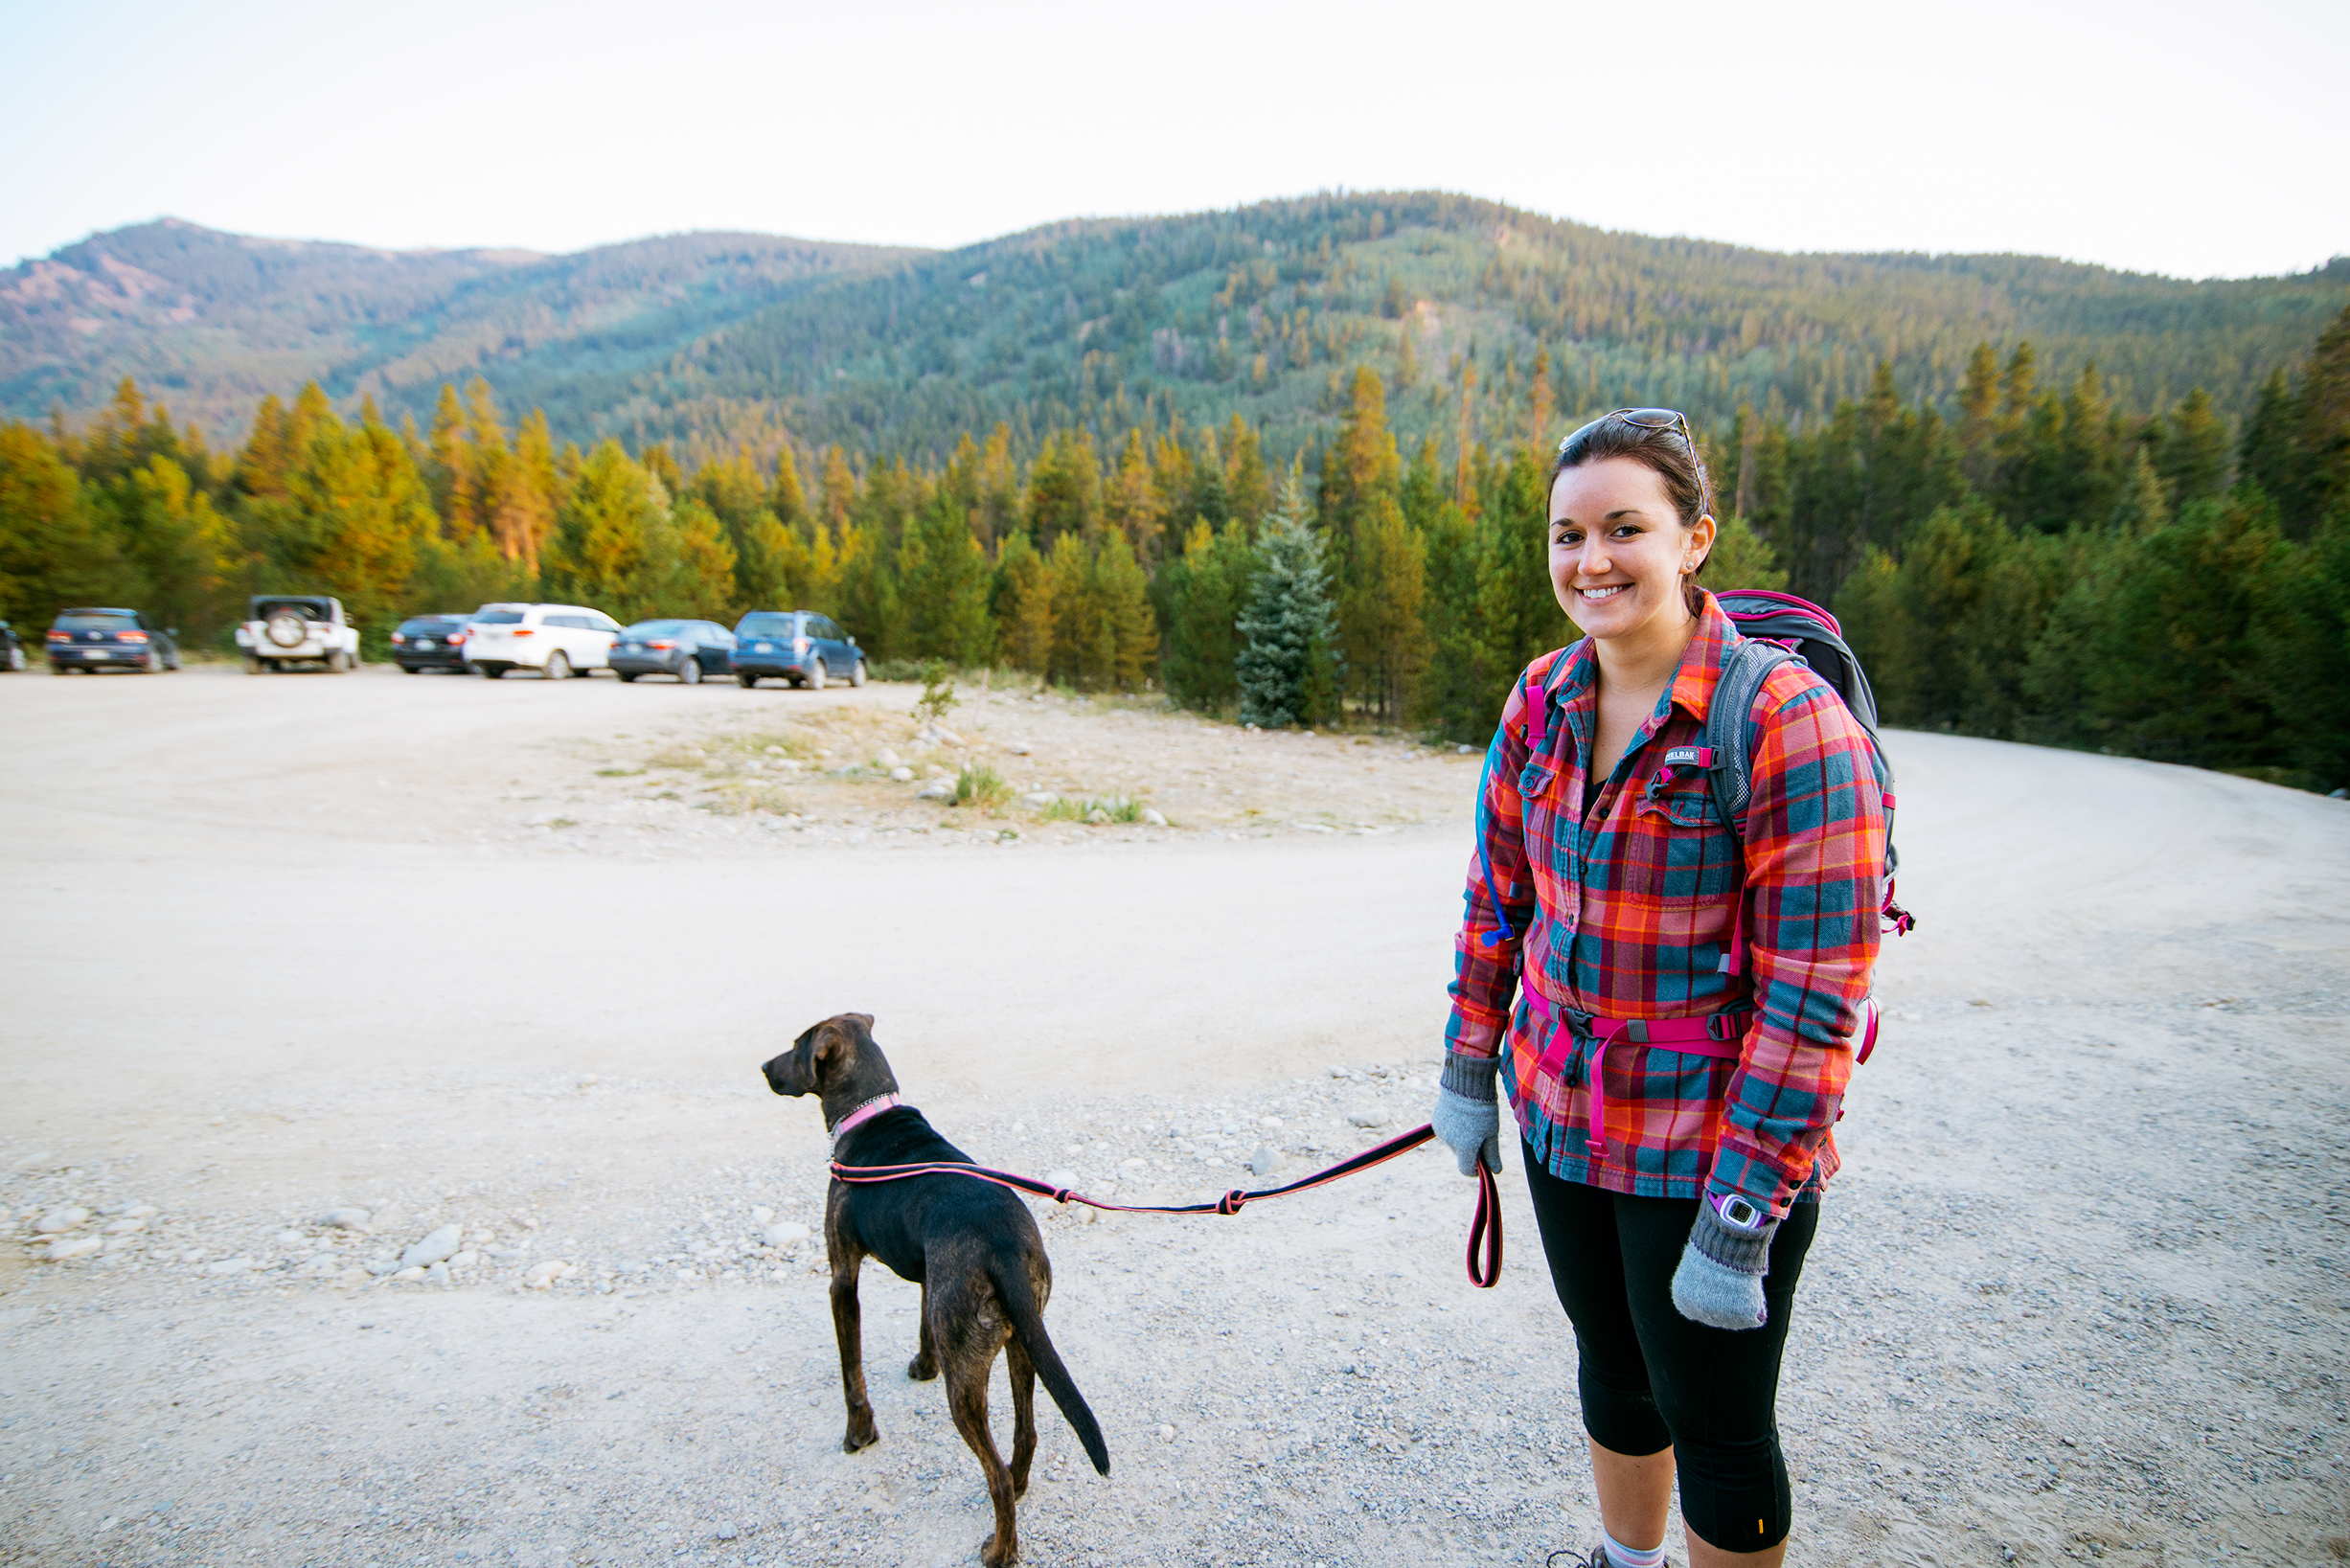 Friend and Puppy at Mount Elbert Trailhead